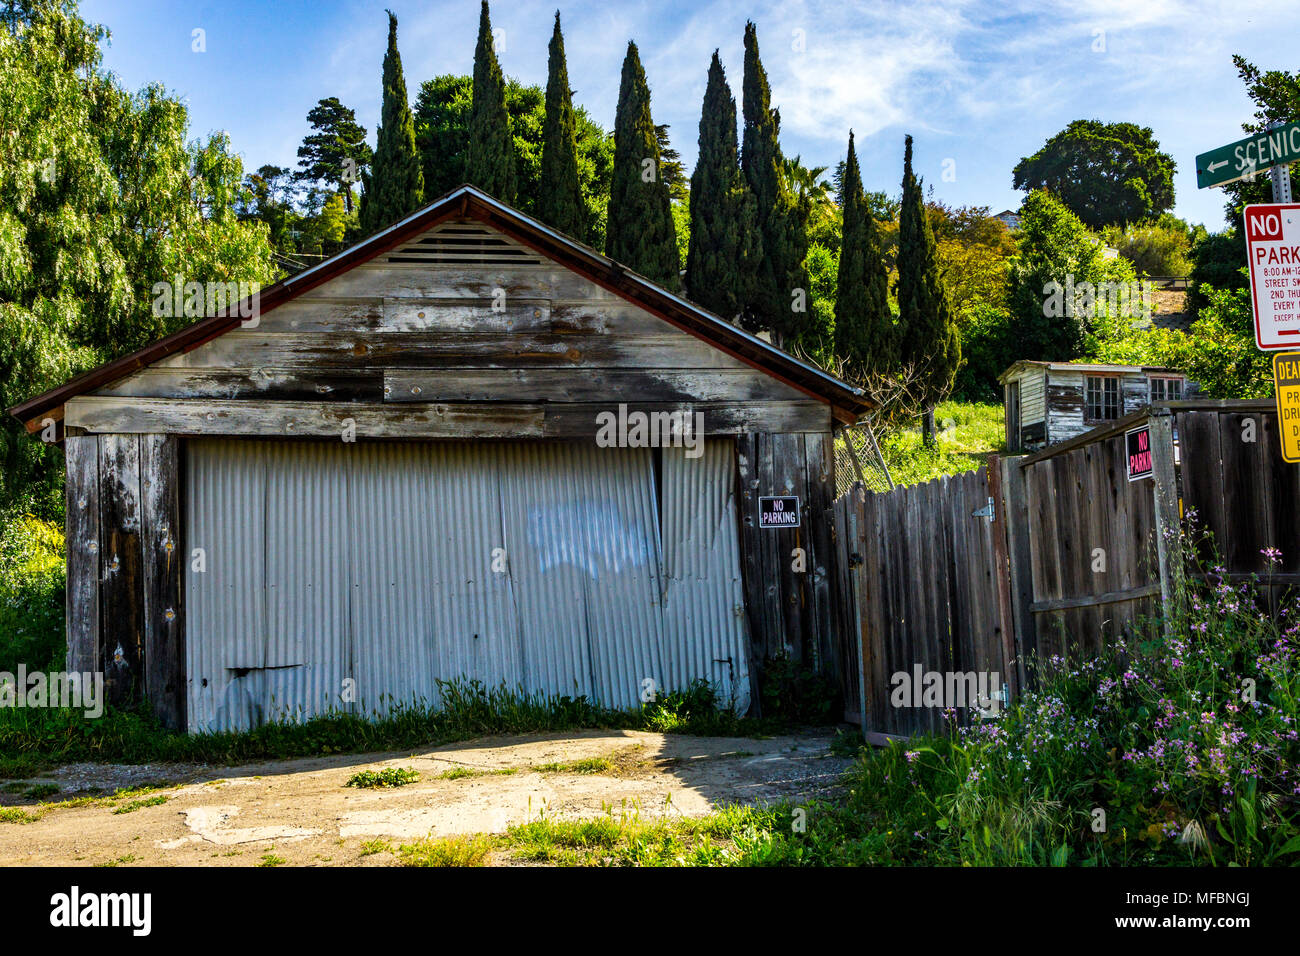 A decrepit old garage in a nice neighborhood in Hayward California ironically on Scenic Way - Stock Image